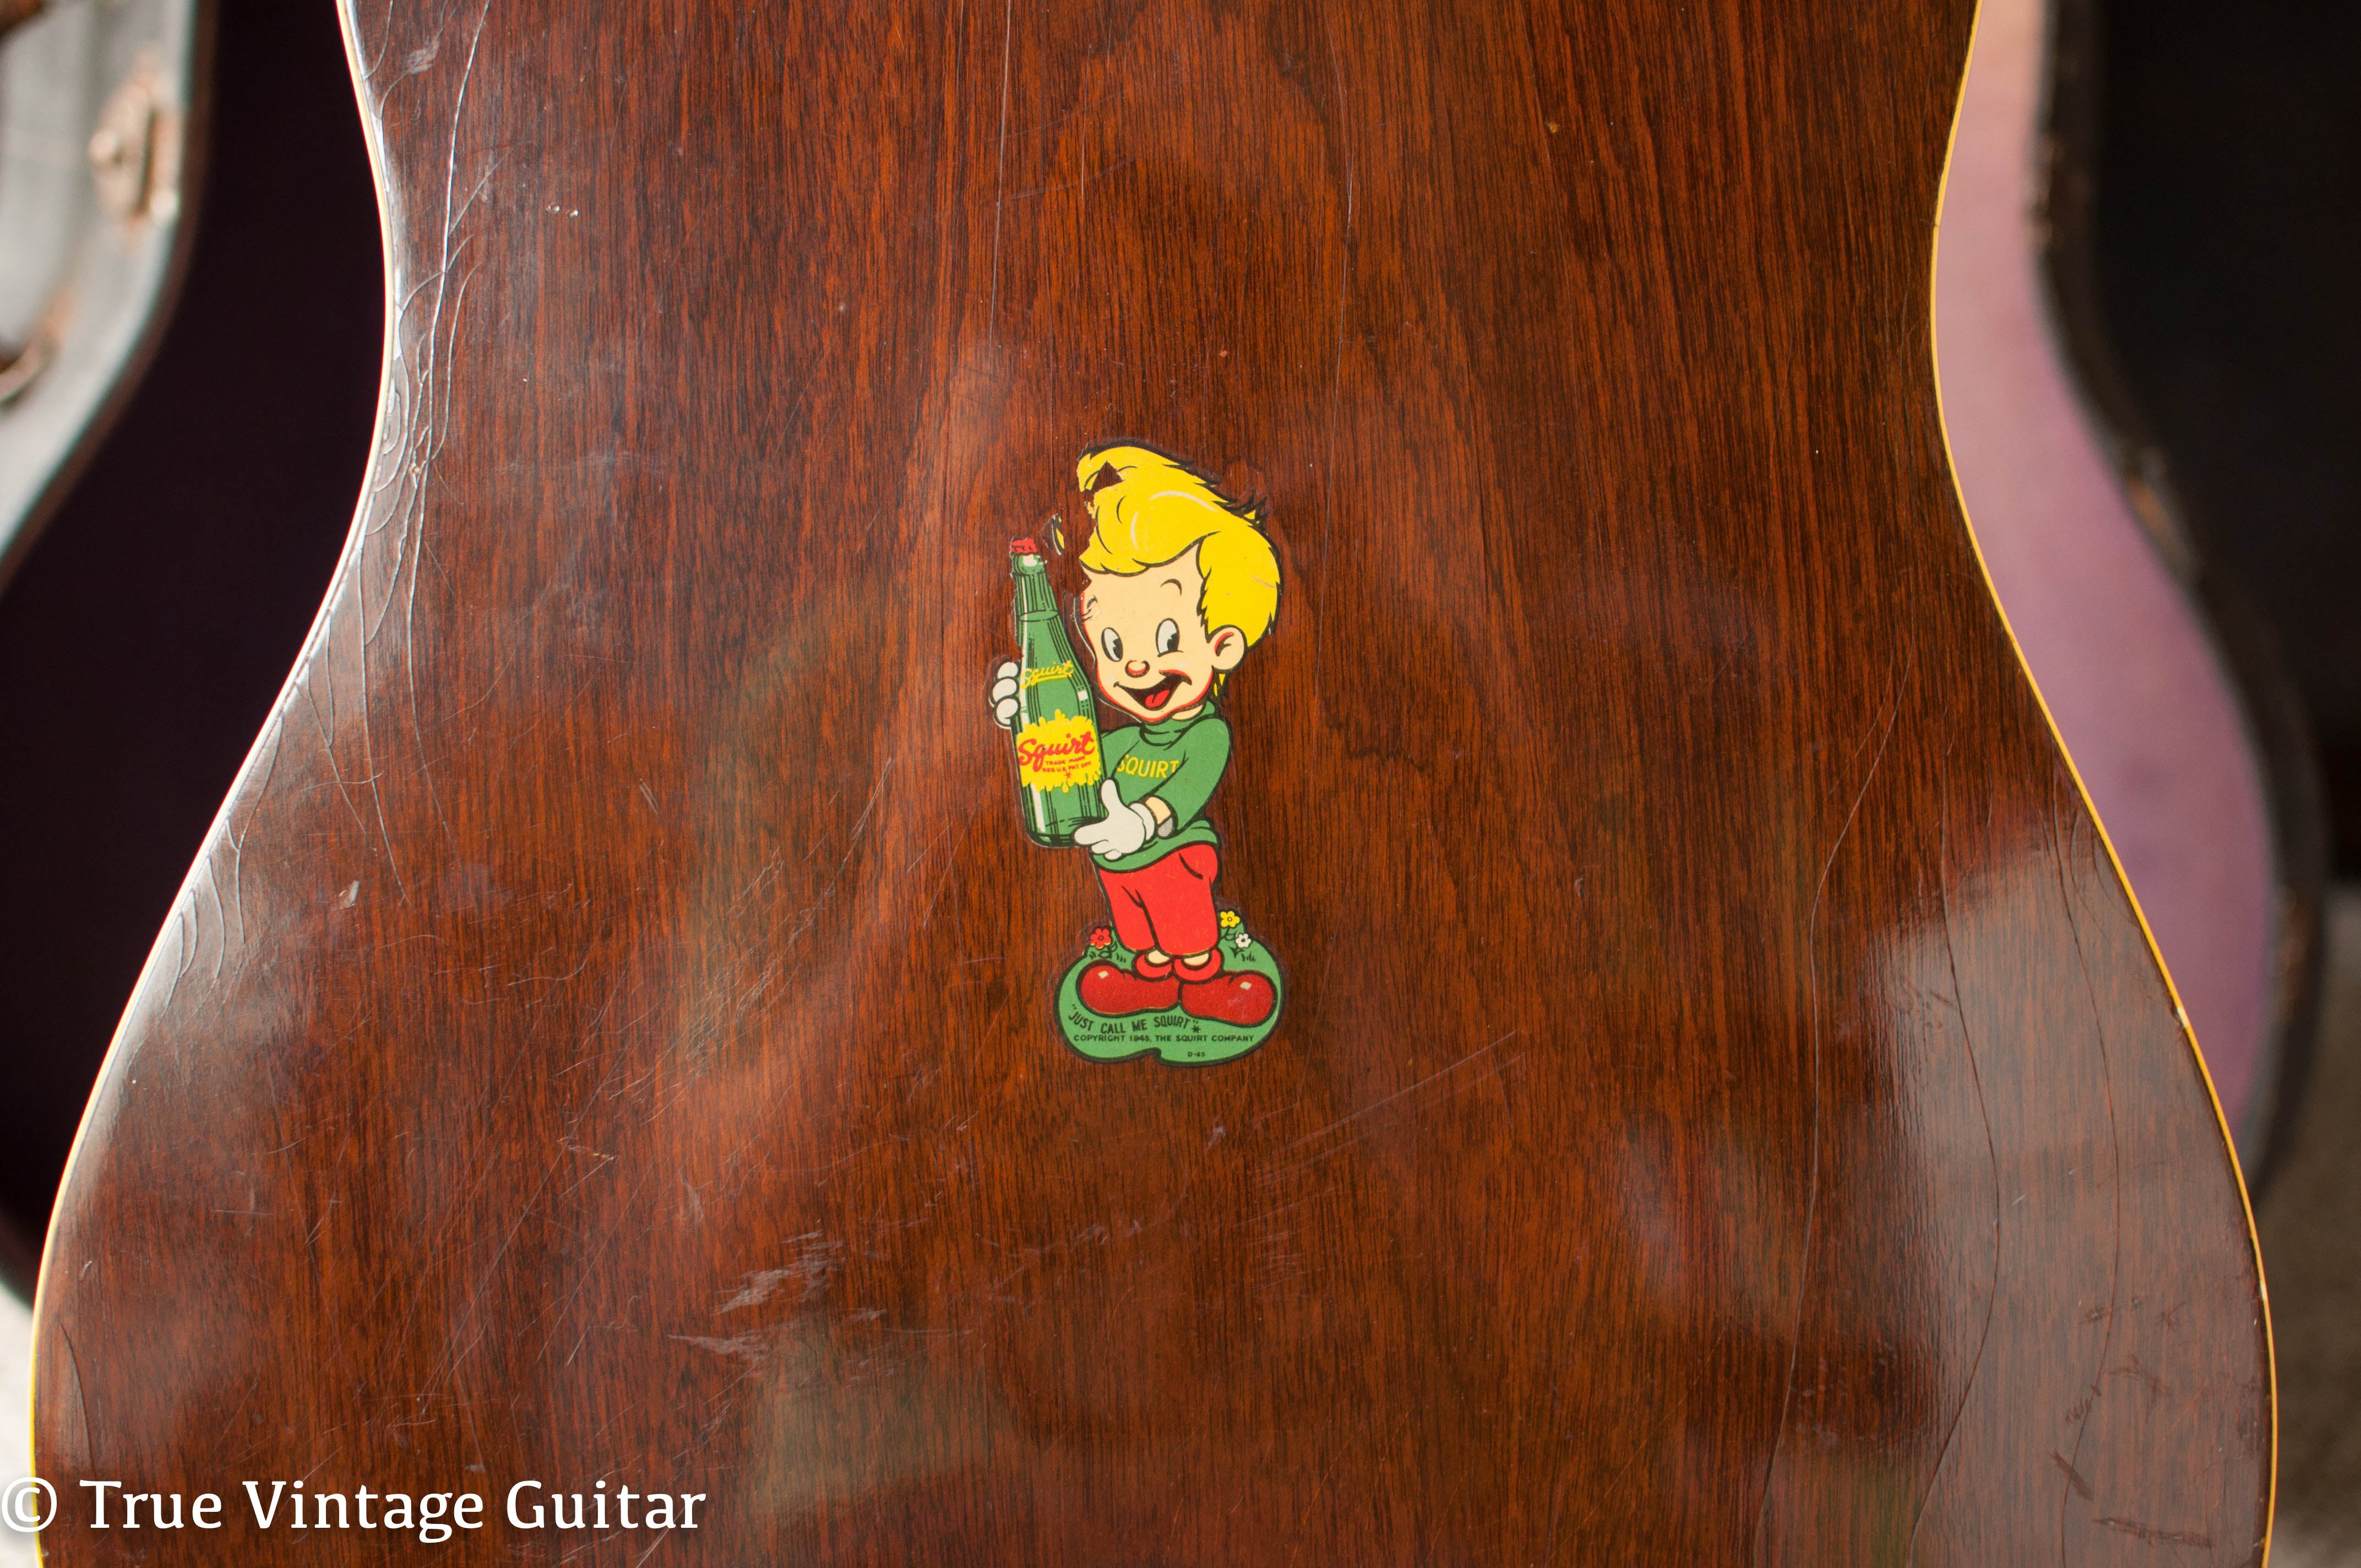 Squirt soda sticker, vintage Gibson acoustic guitar